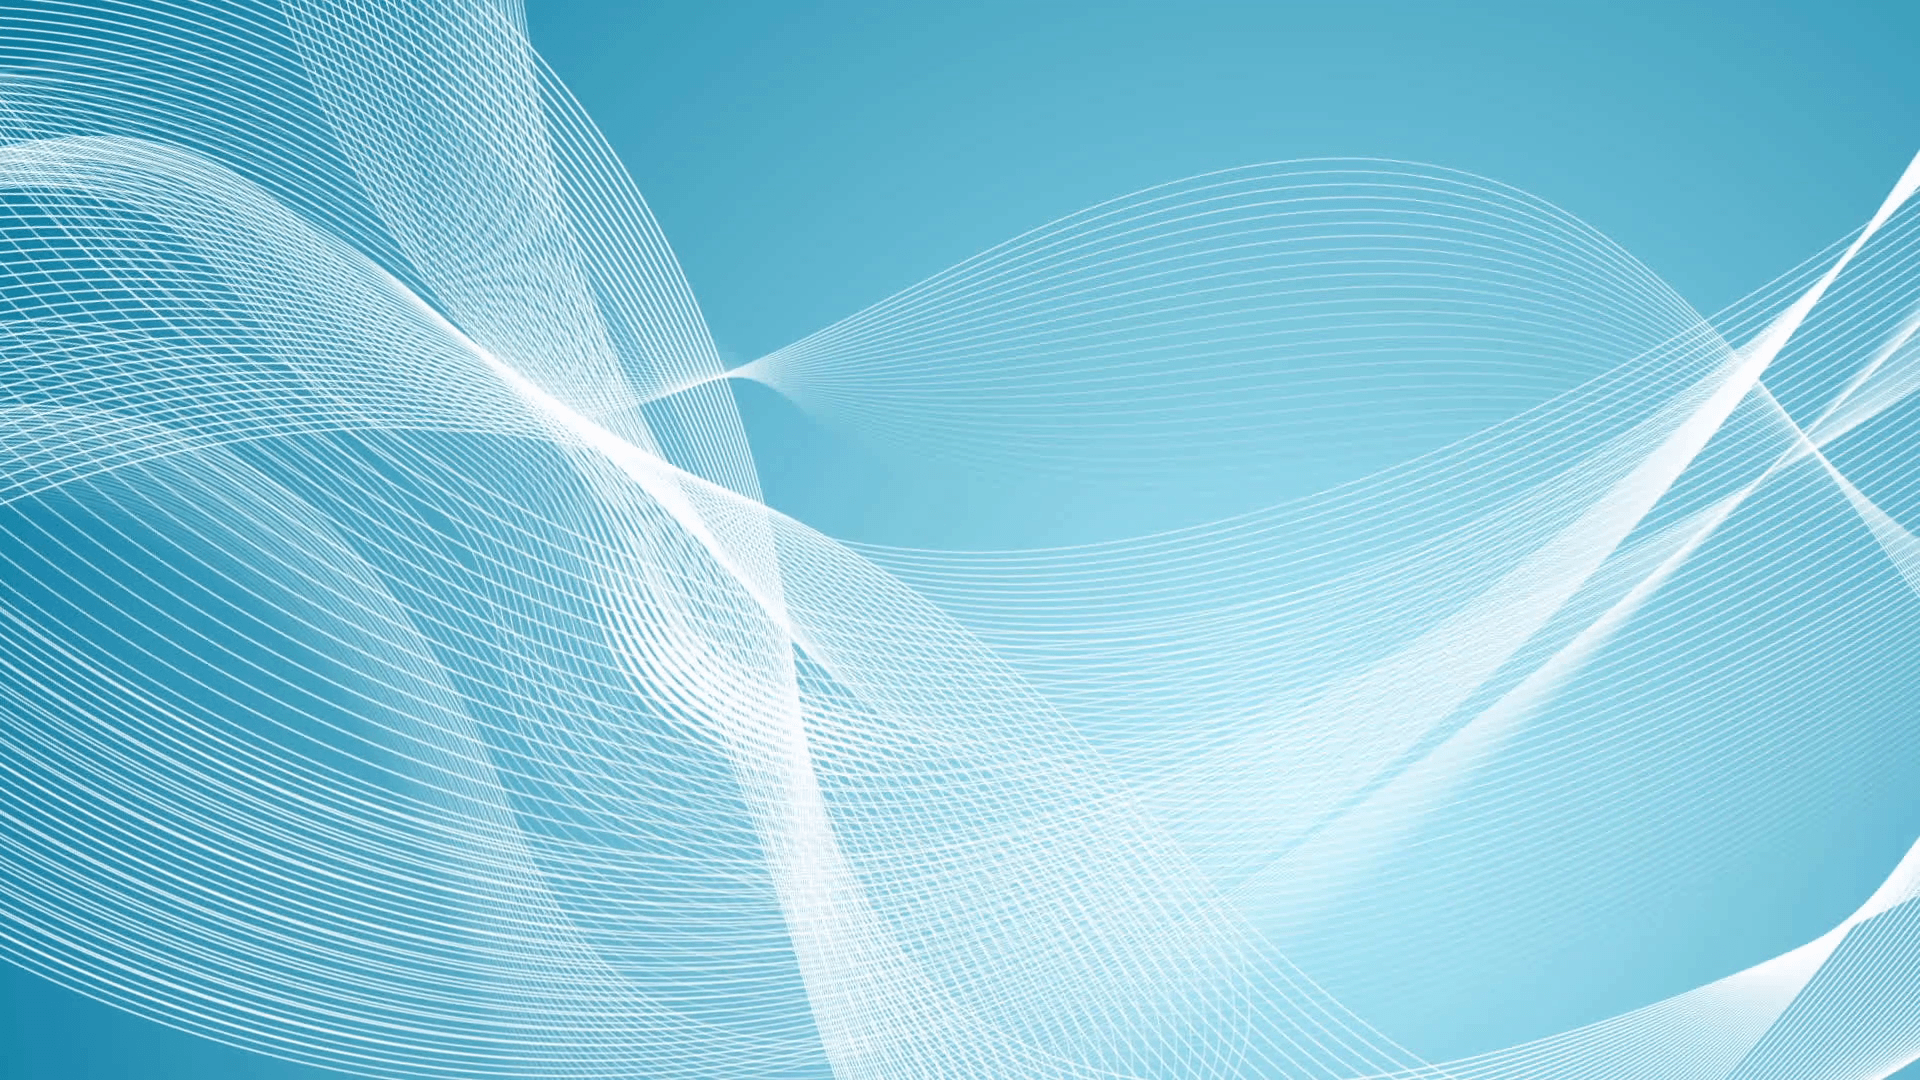 Abstract blue and white wavy lines motion graphic design. Video